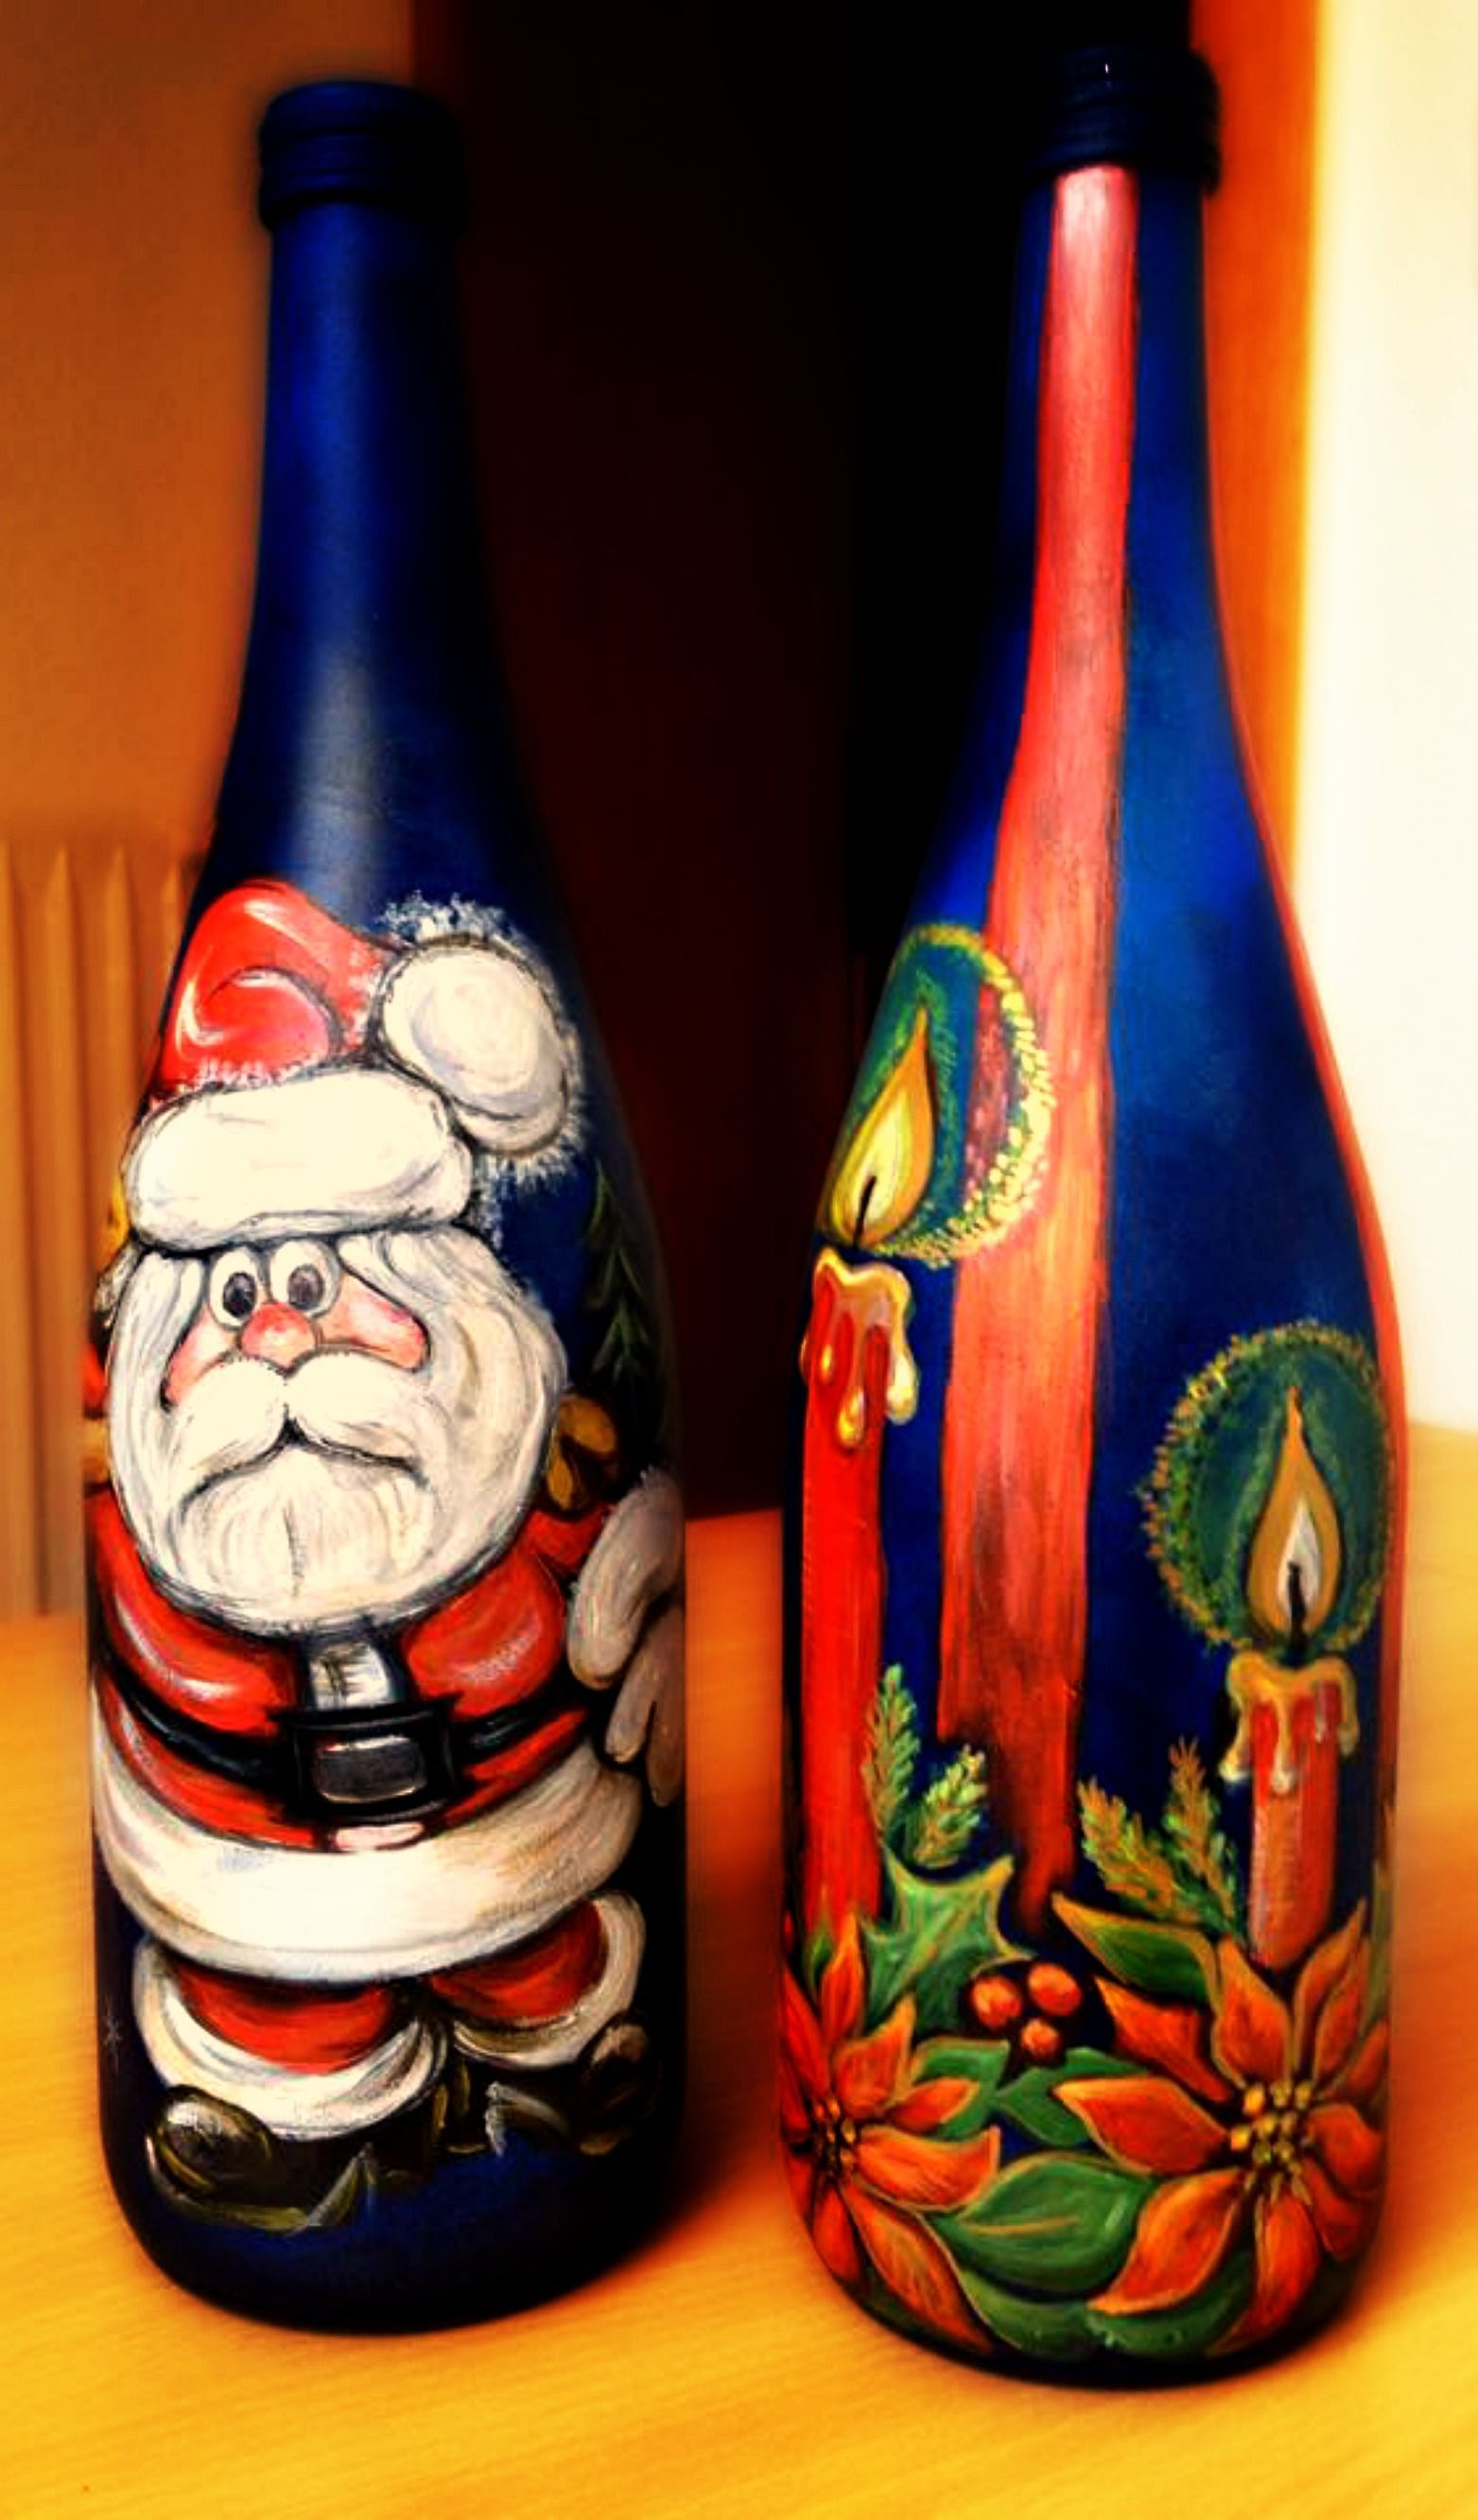 Christmas Gifts Decorated Bottles Of Wine Hand Painted Acrylic Paint Painted Glass Bottles Lighted Wine Bott Bottle Art Wine Bottle Art Bottles Decoration